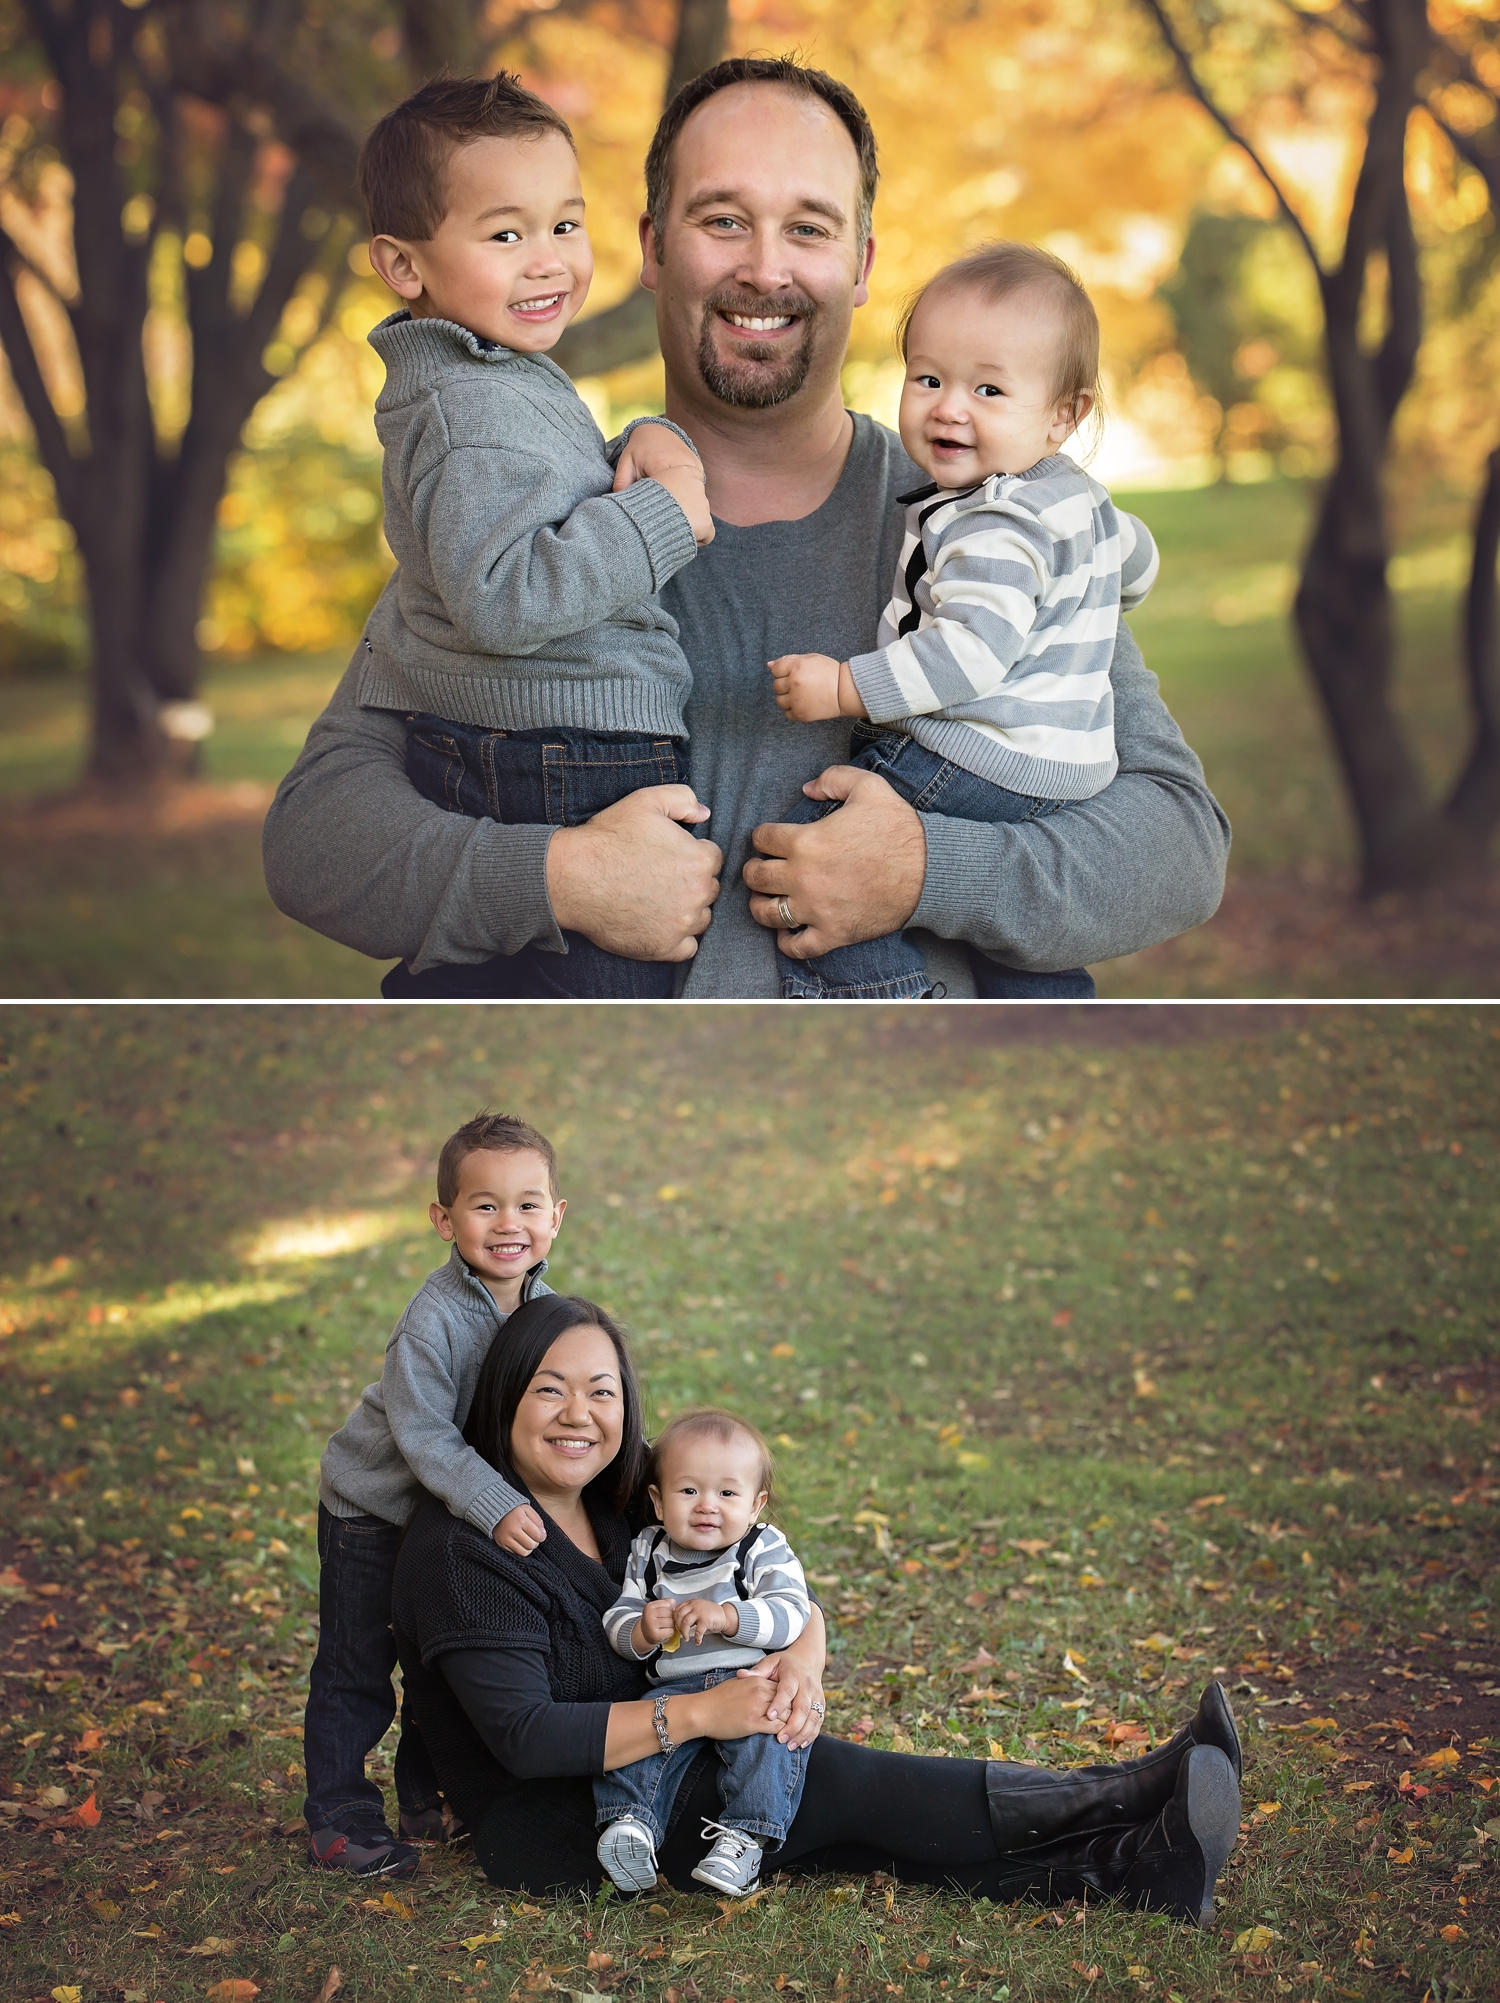 Family Photo Session - Barrie Ontario Photographer 3